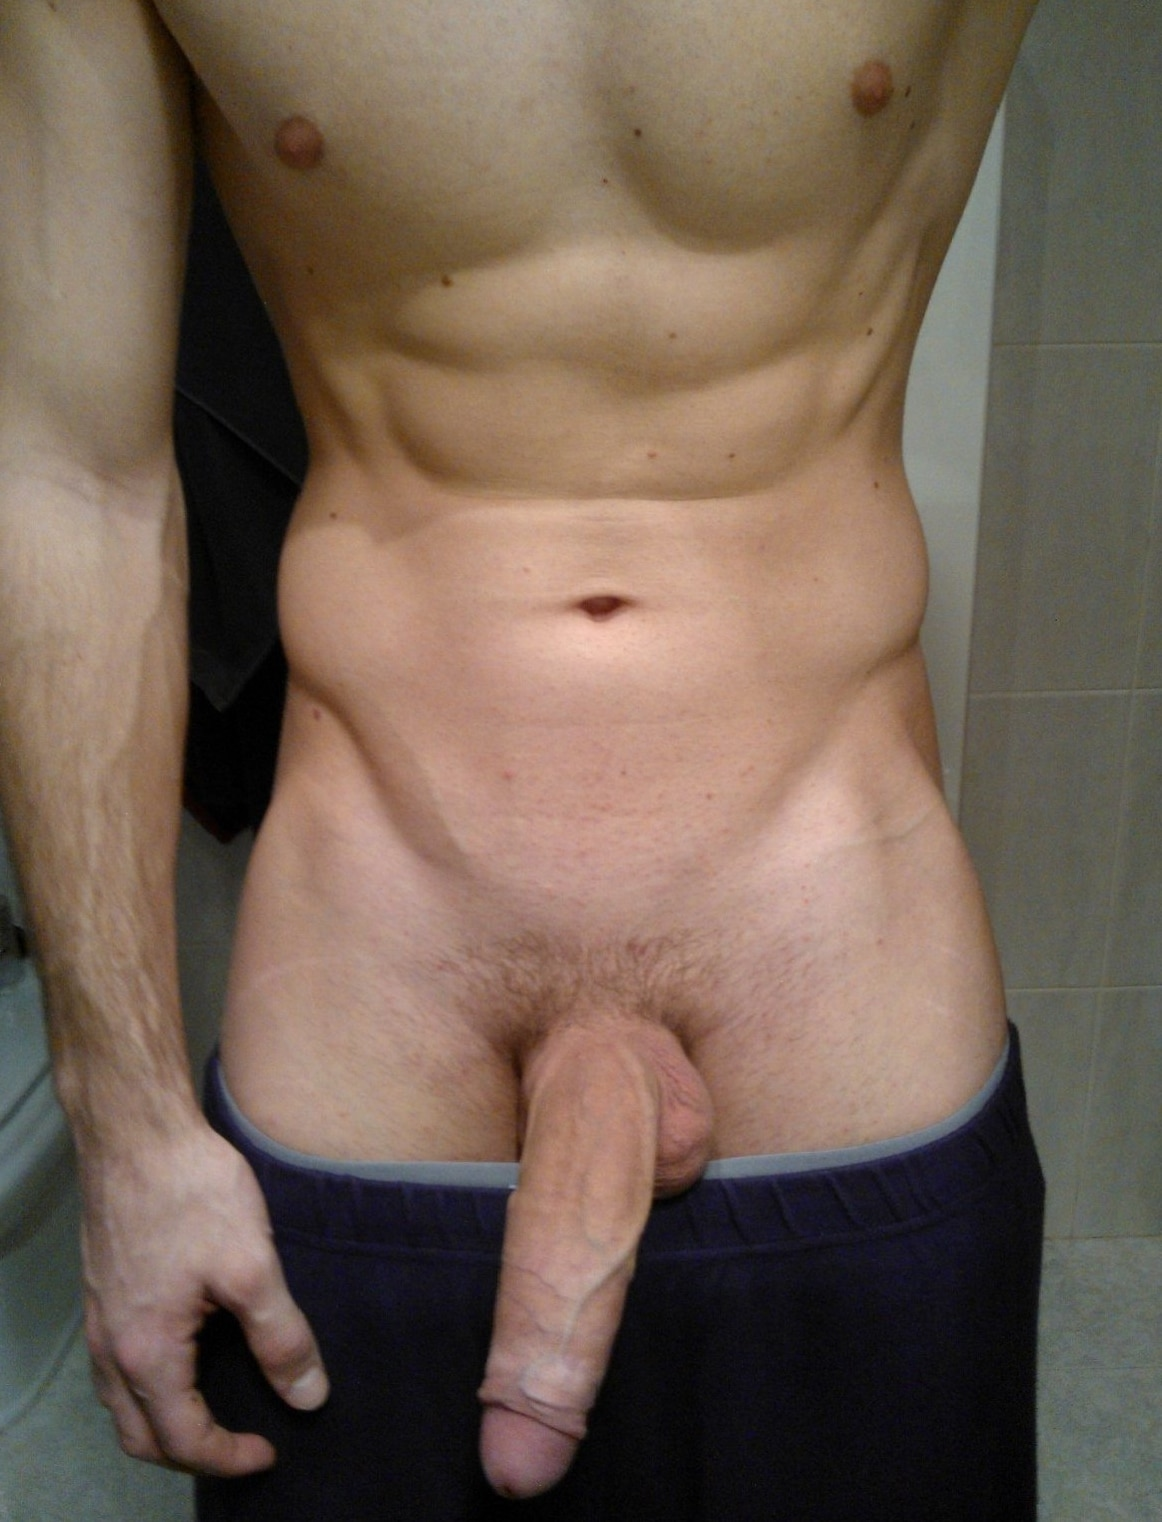 Stud taking dick picture